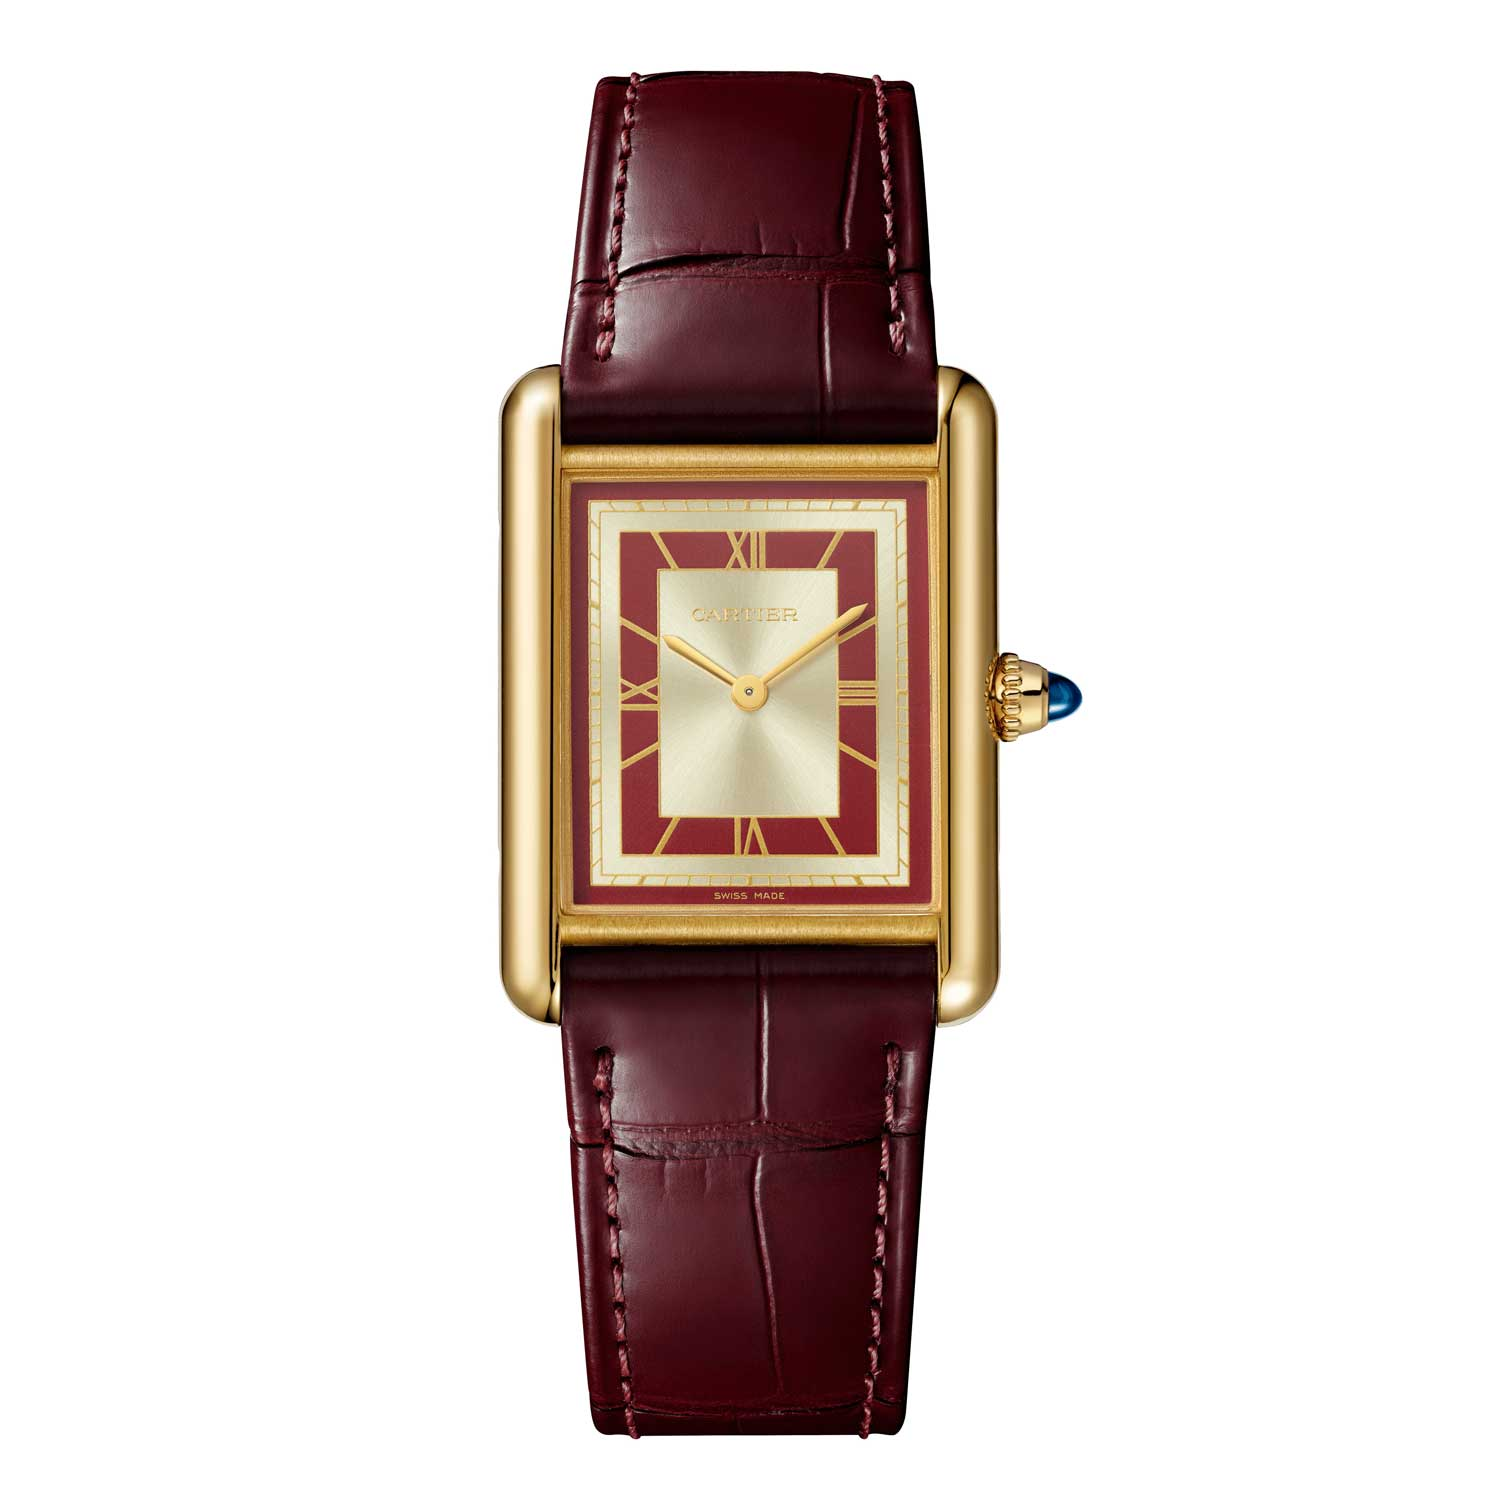 The Tank Louis Cartier watches includes two gold models both featuring stunning dials of the type seen in Les Must de Cartier watches